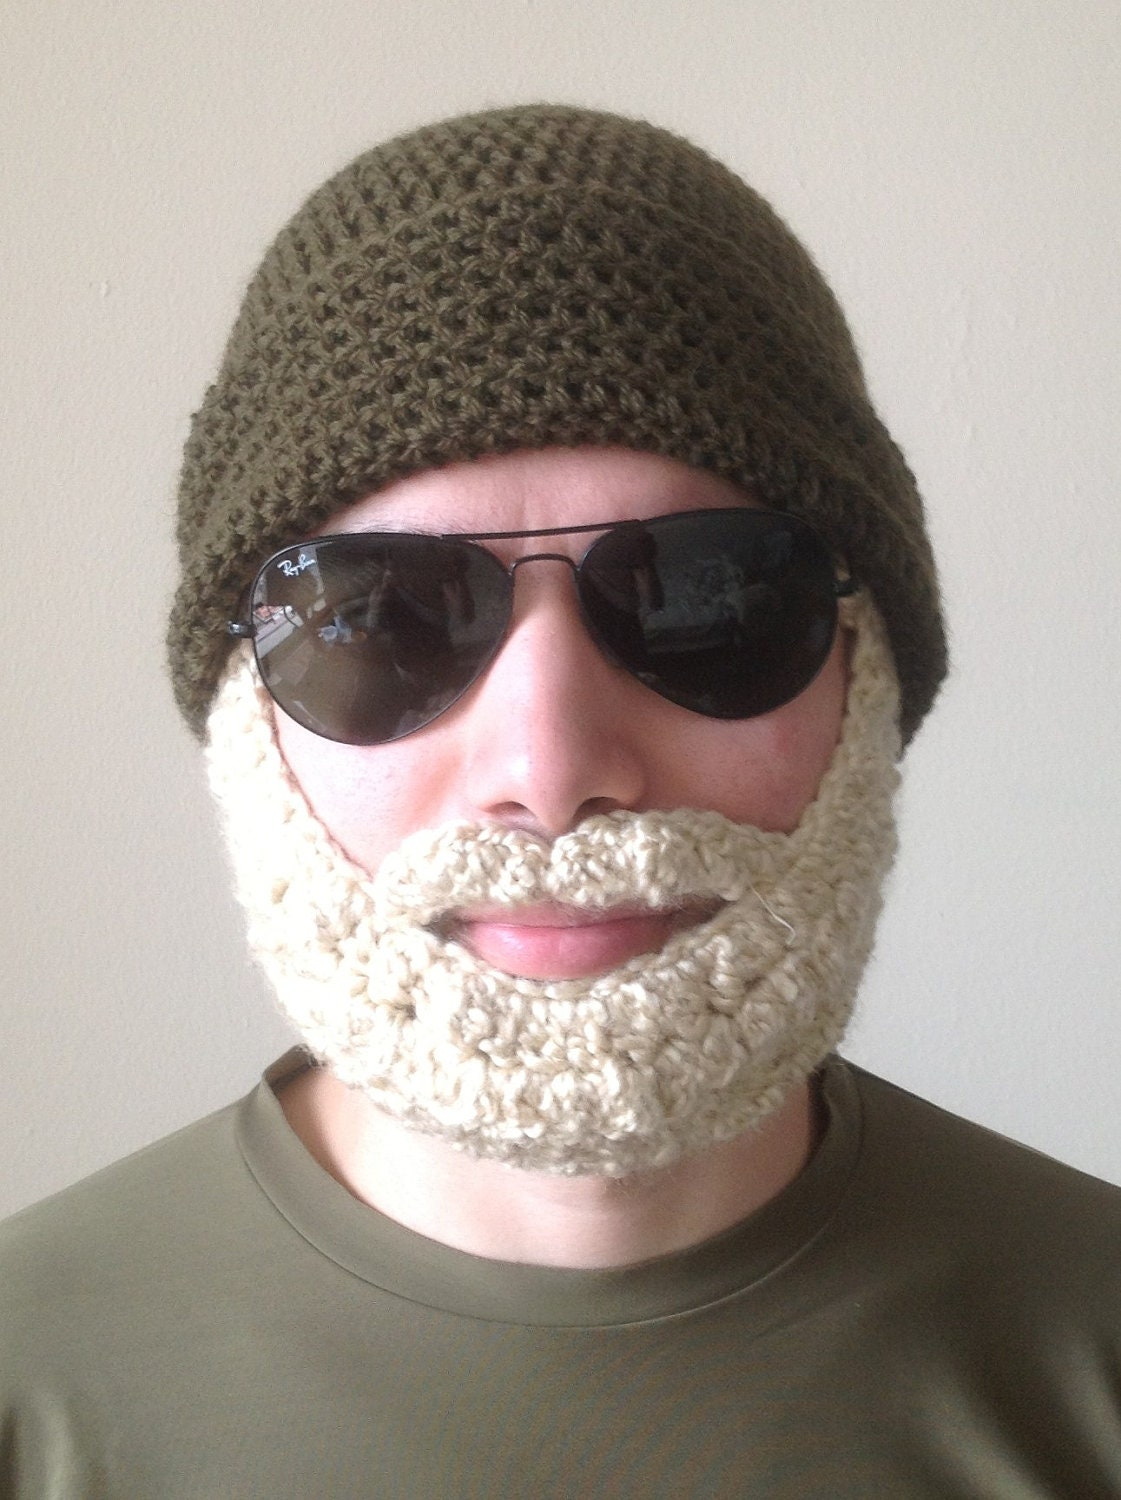 Handmade Crochet Beard Hat in Olive green beanie hat with